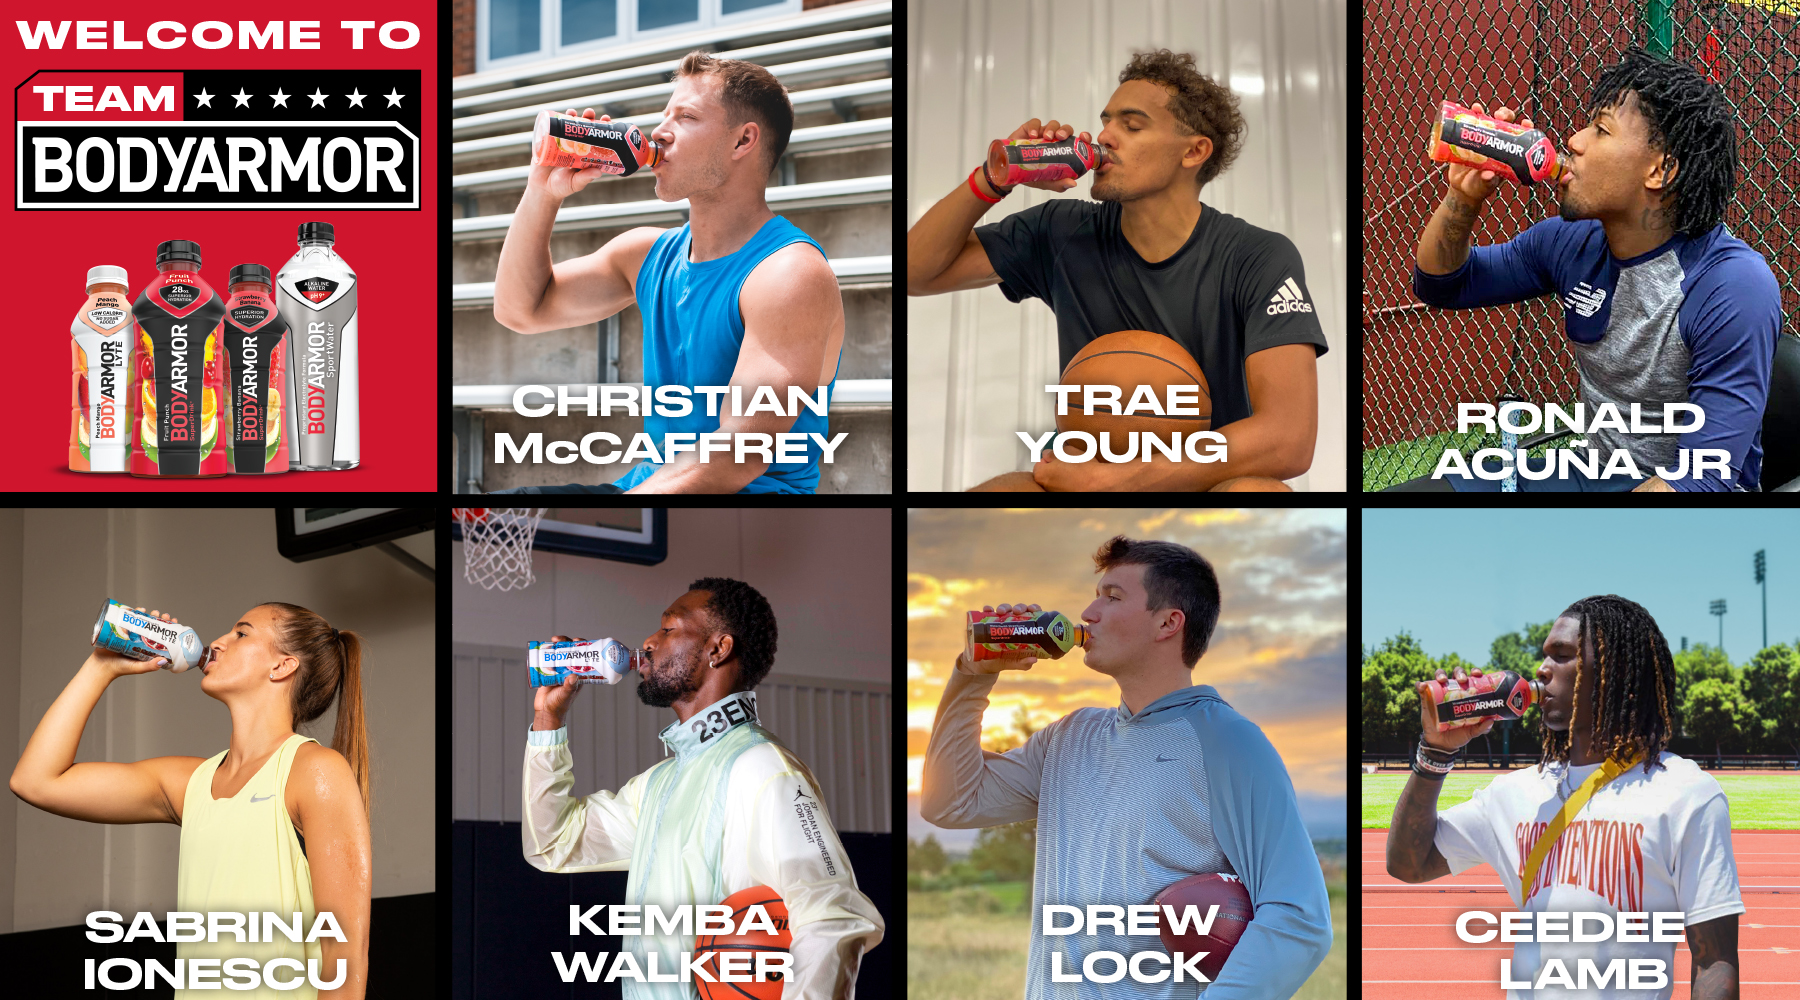 SOURCE SPORTS: BODYARMOR Adds Trae Young, Christian McCaffrey, Sabrina Ionescu and More as Athlete Partners